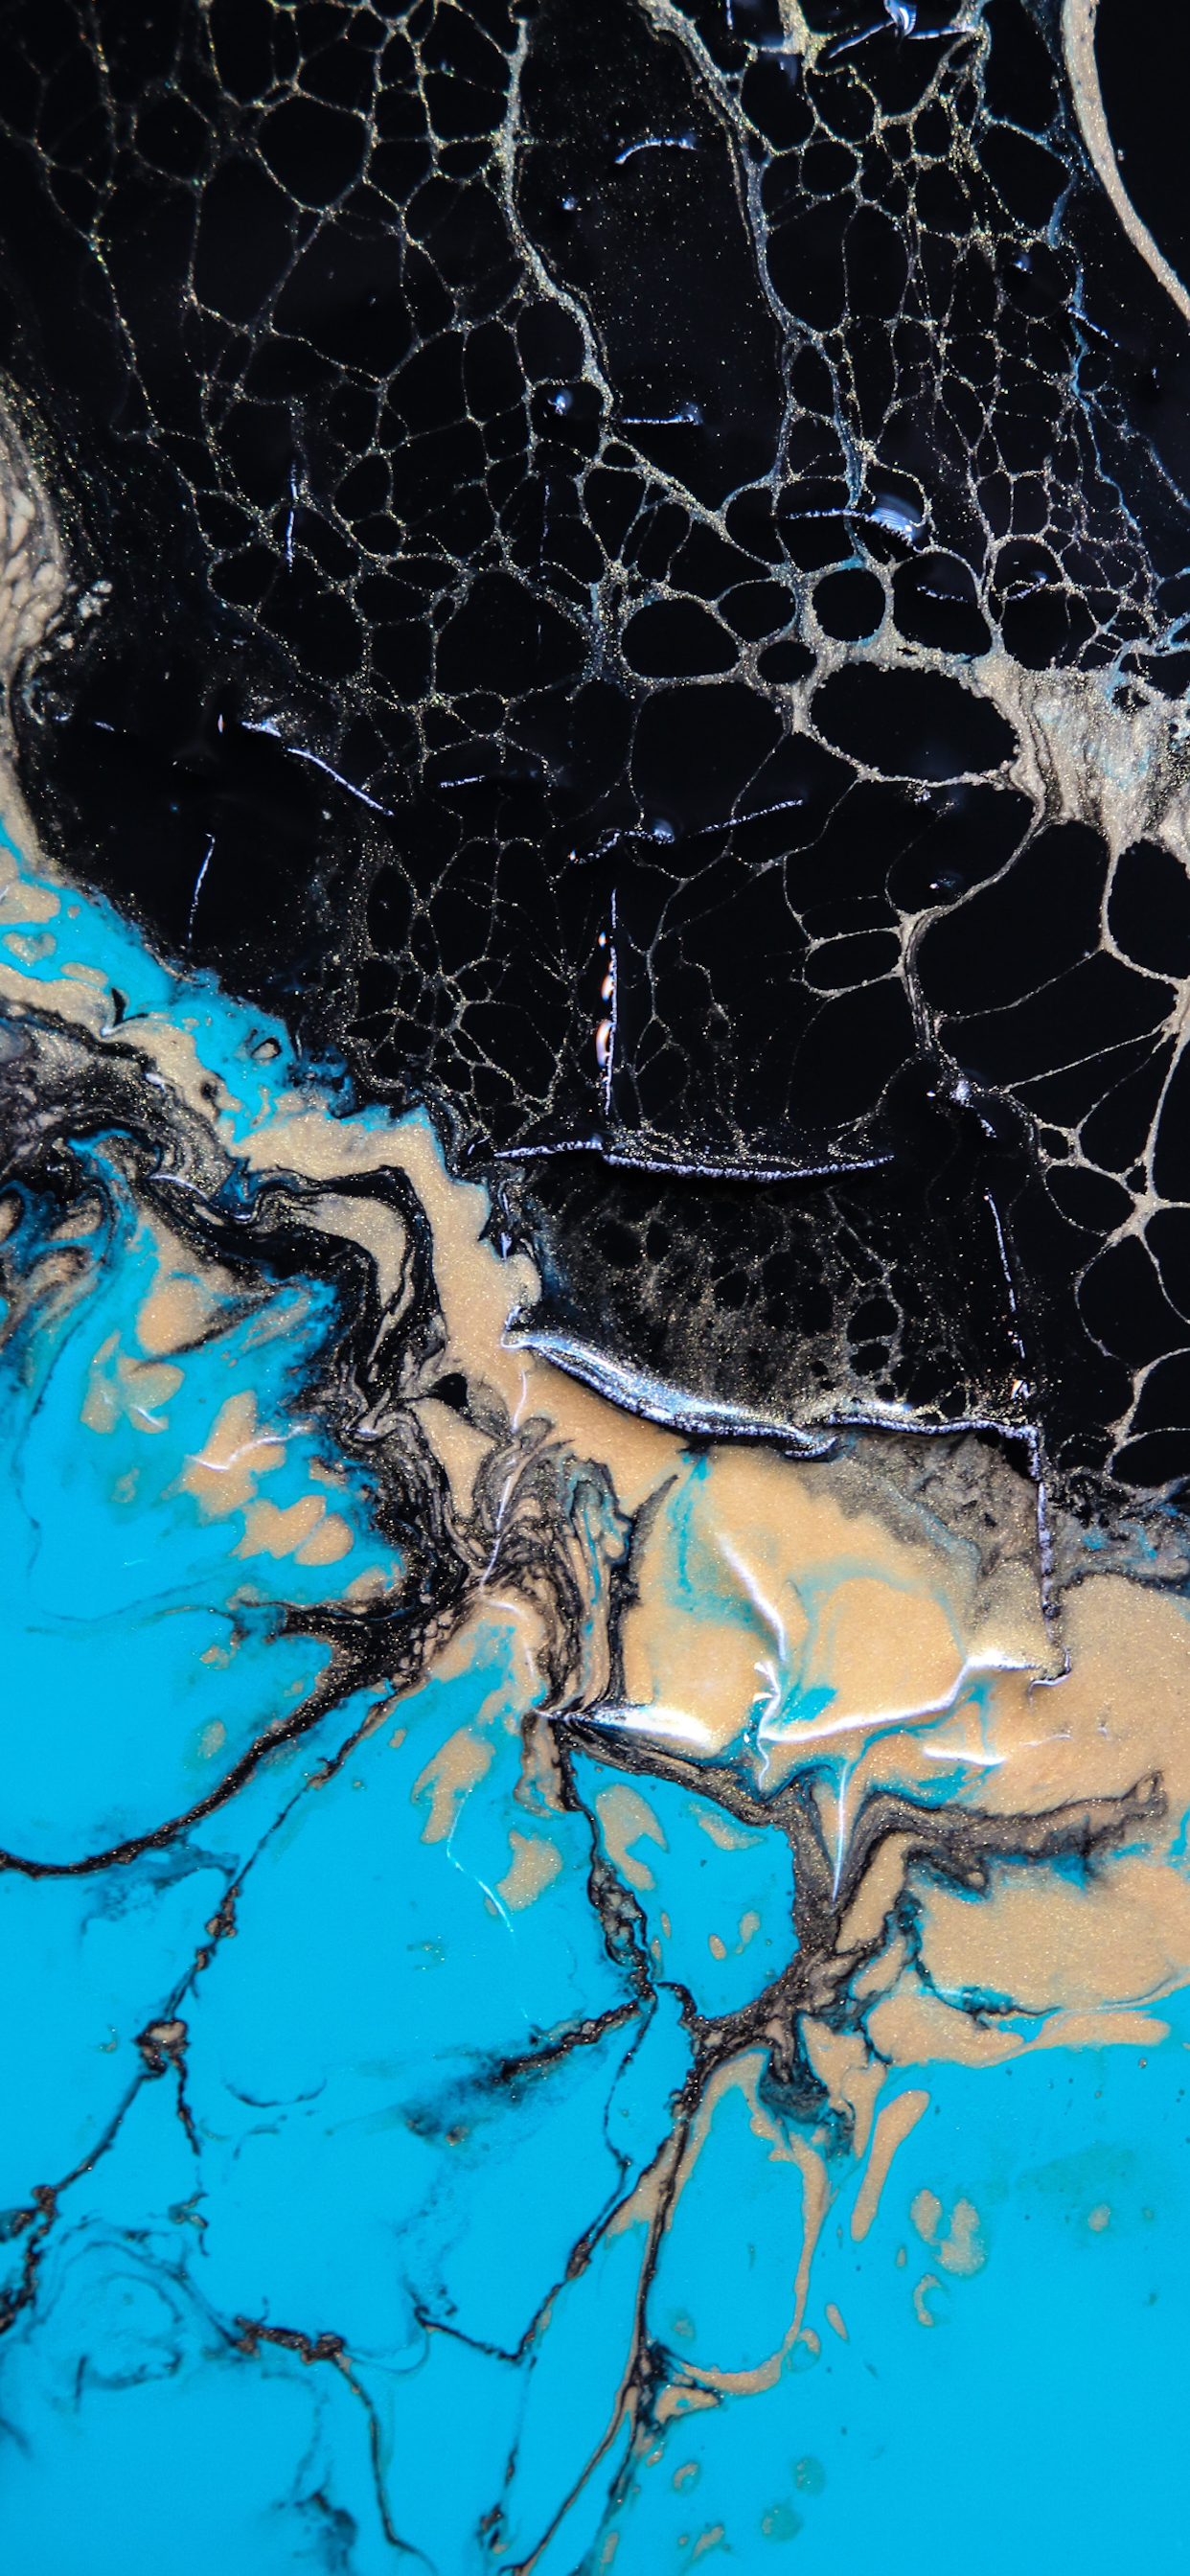 iPhone wallpapers abstract liquids blue black Abstract